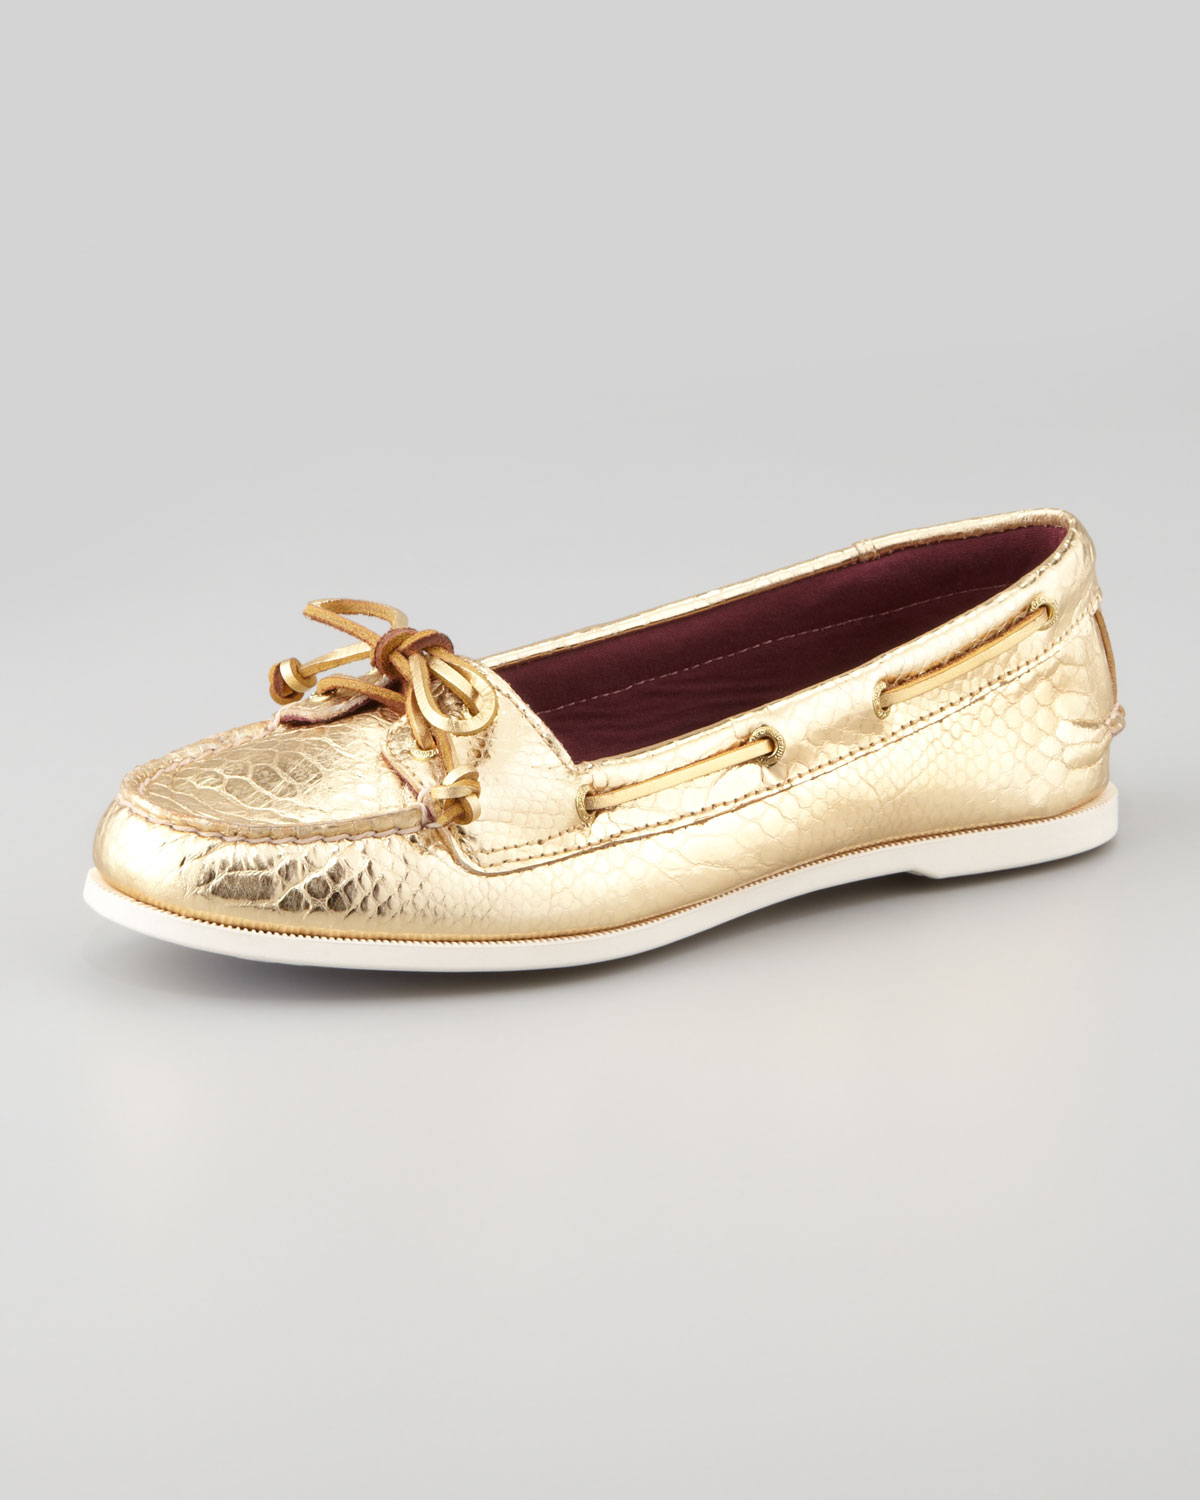 Sperry Top Sider Audrey Boat Shoe